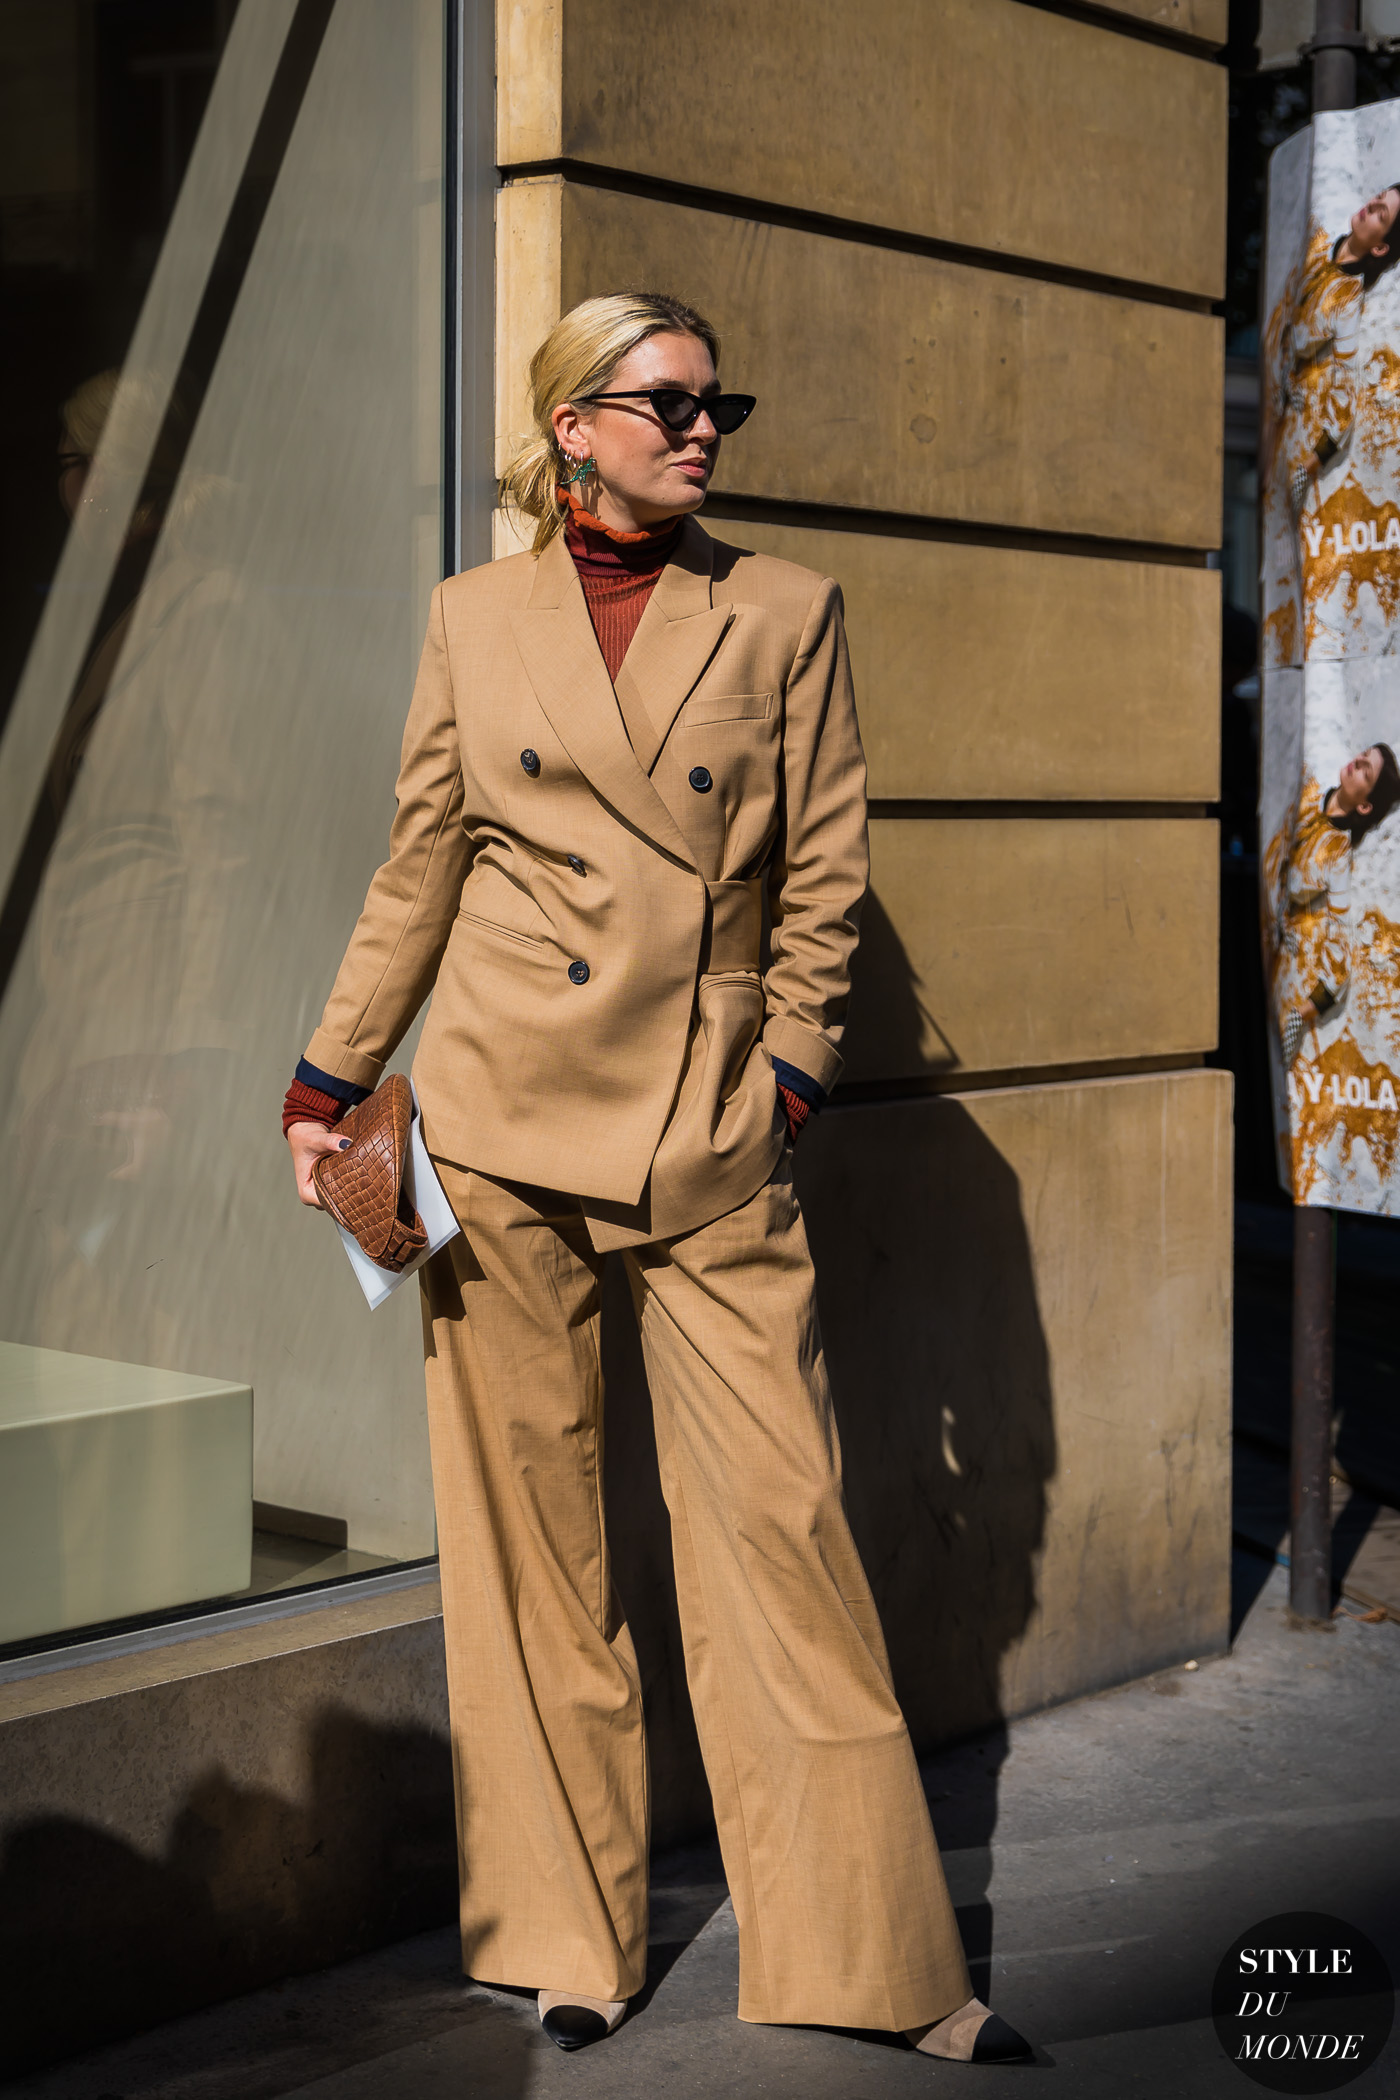 Camille Charriere by STYLEDUMONDE Street Style Fashion Photography_48A5392